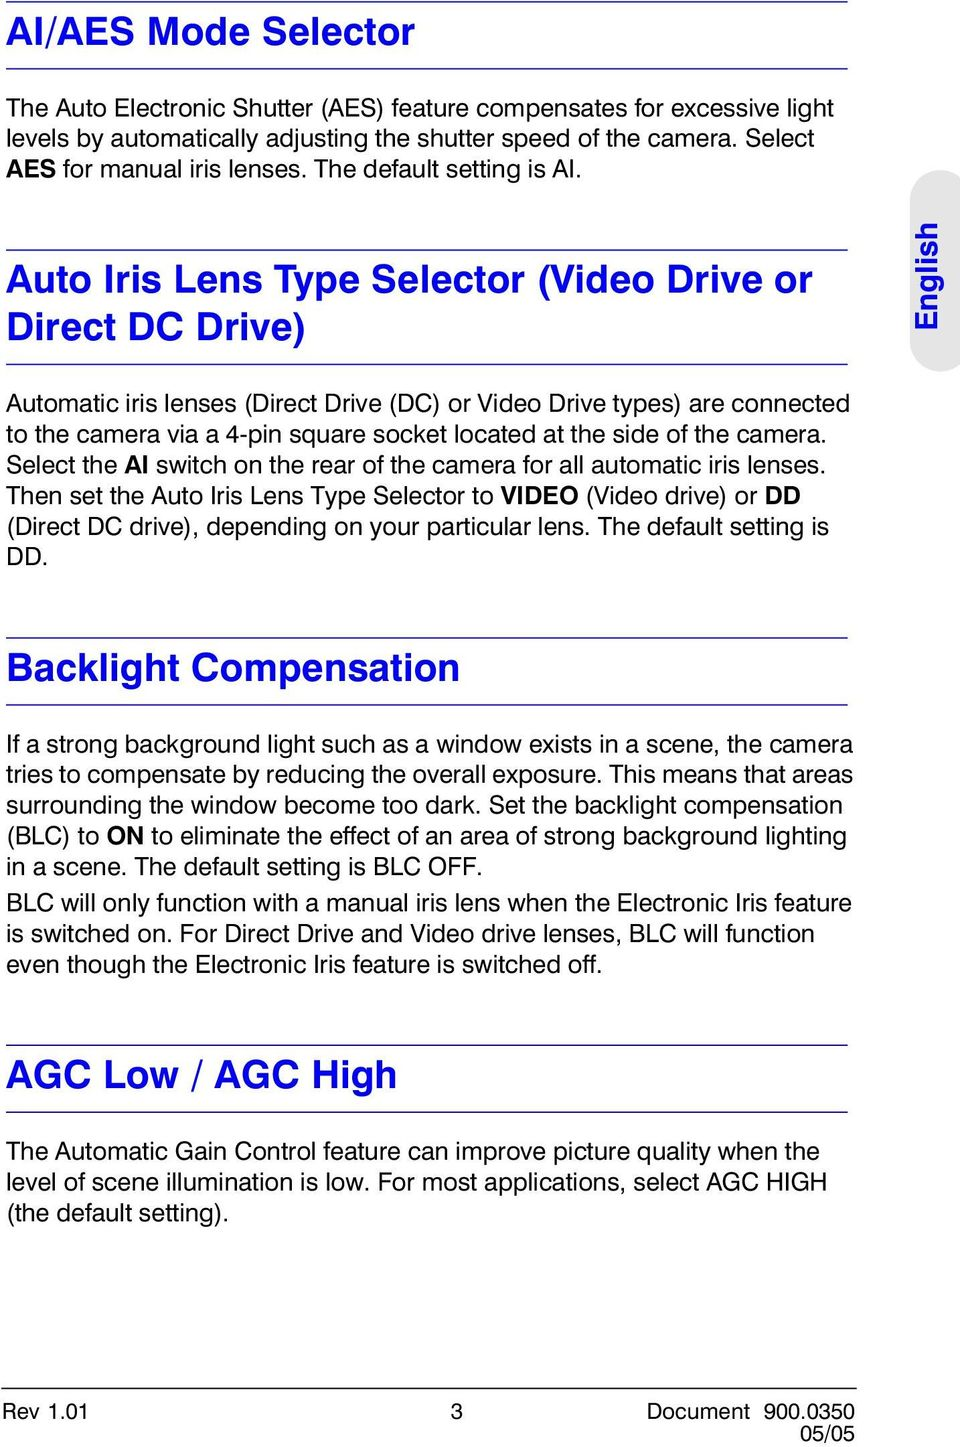 Auto Iris Lens Type Selector (Video Drive or Direct DC Drive) English Automatic iris lenses (Direct Drive (DC) or Video Drive types) are connected to the camera via a 4-pin square socket located at